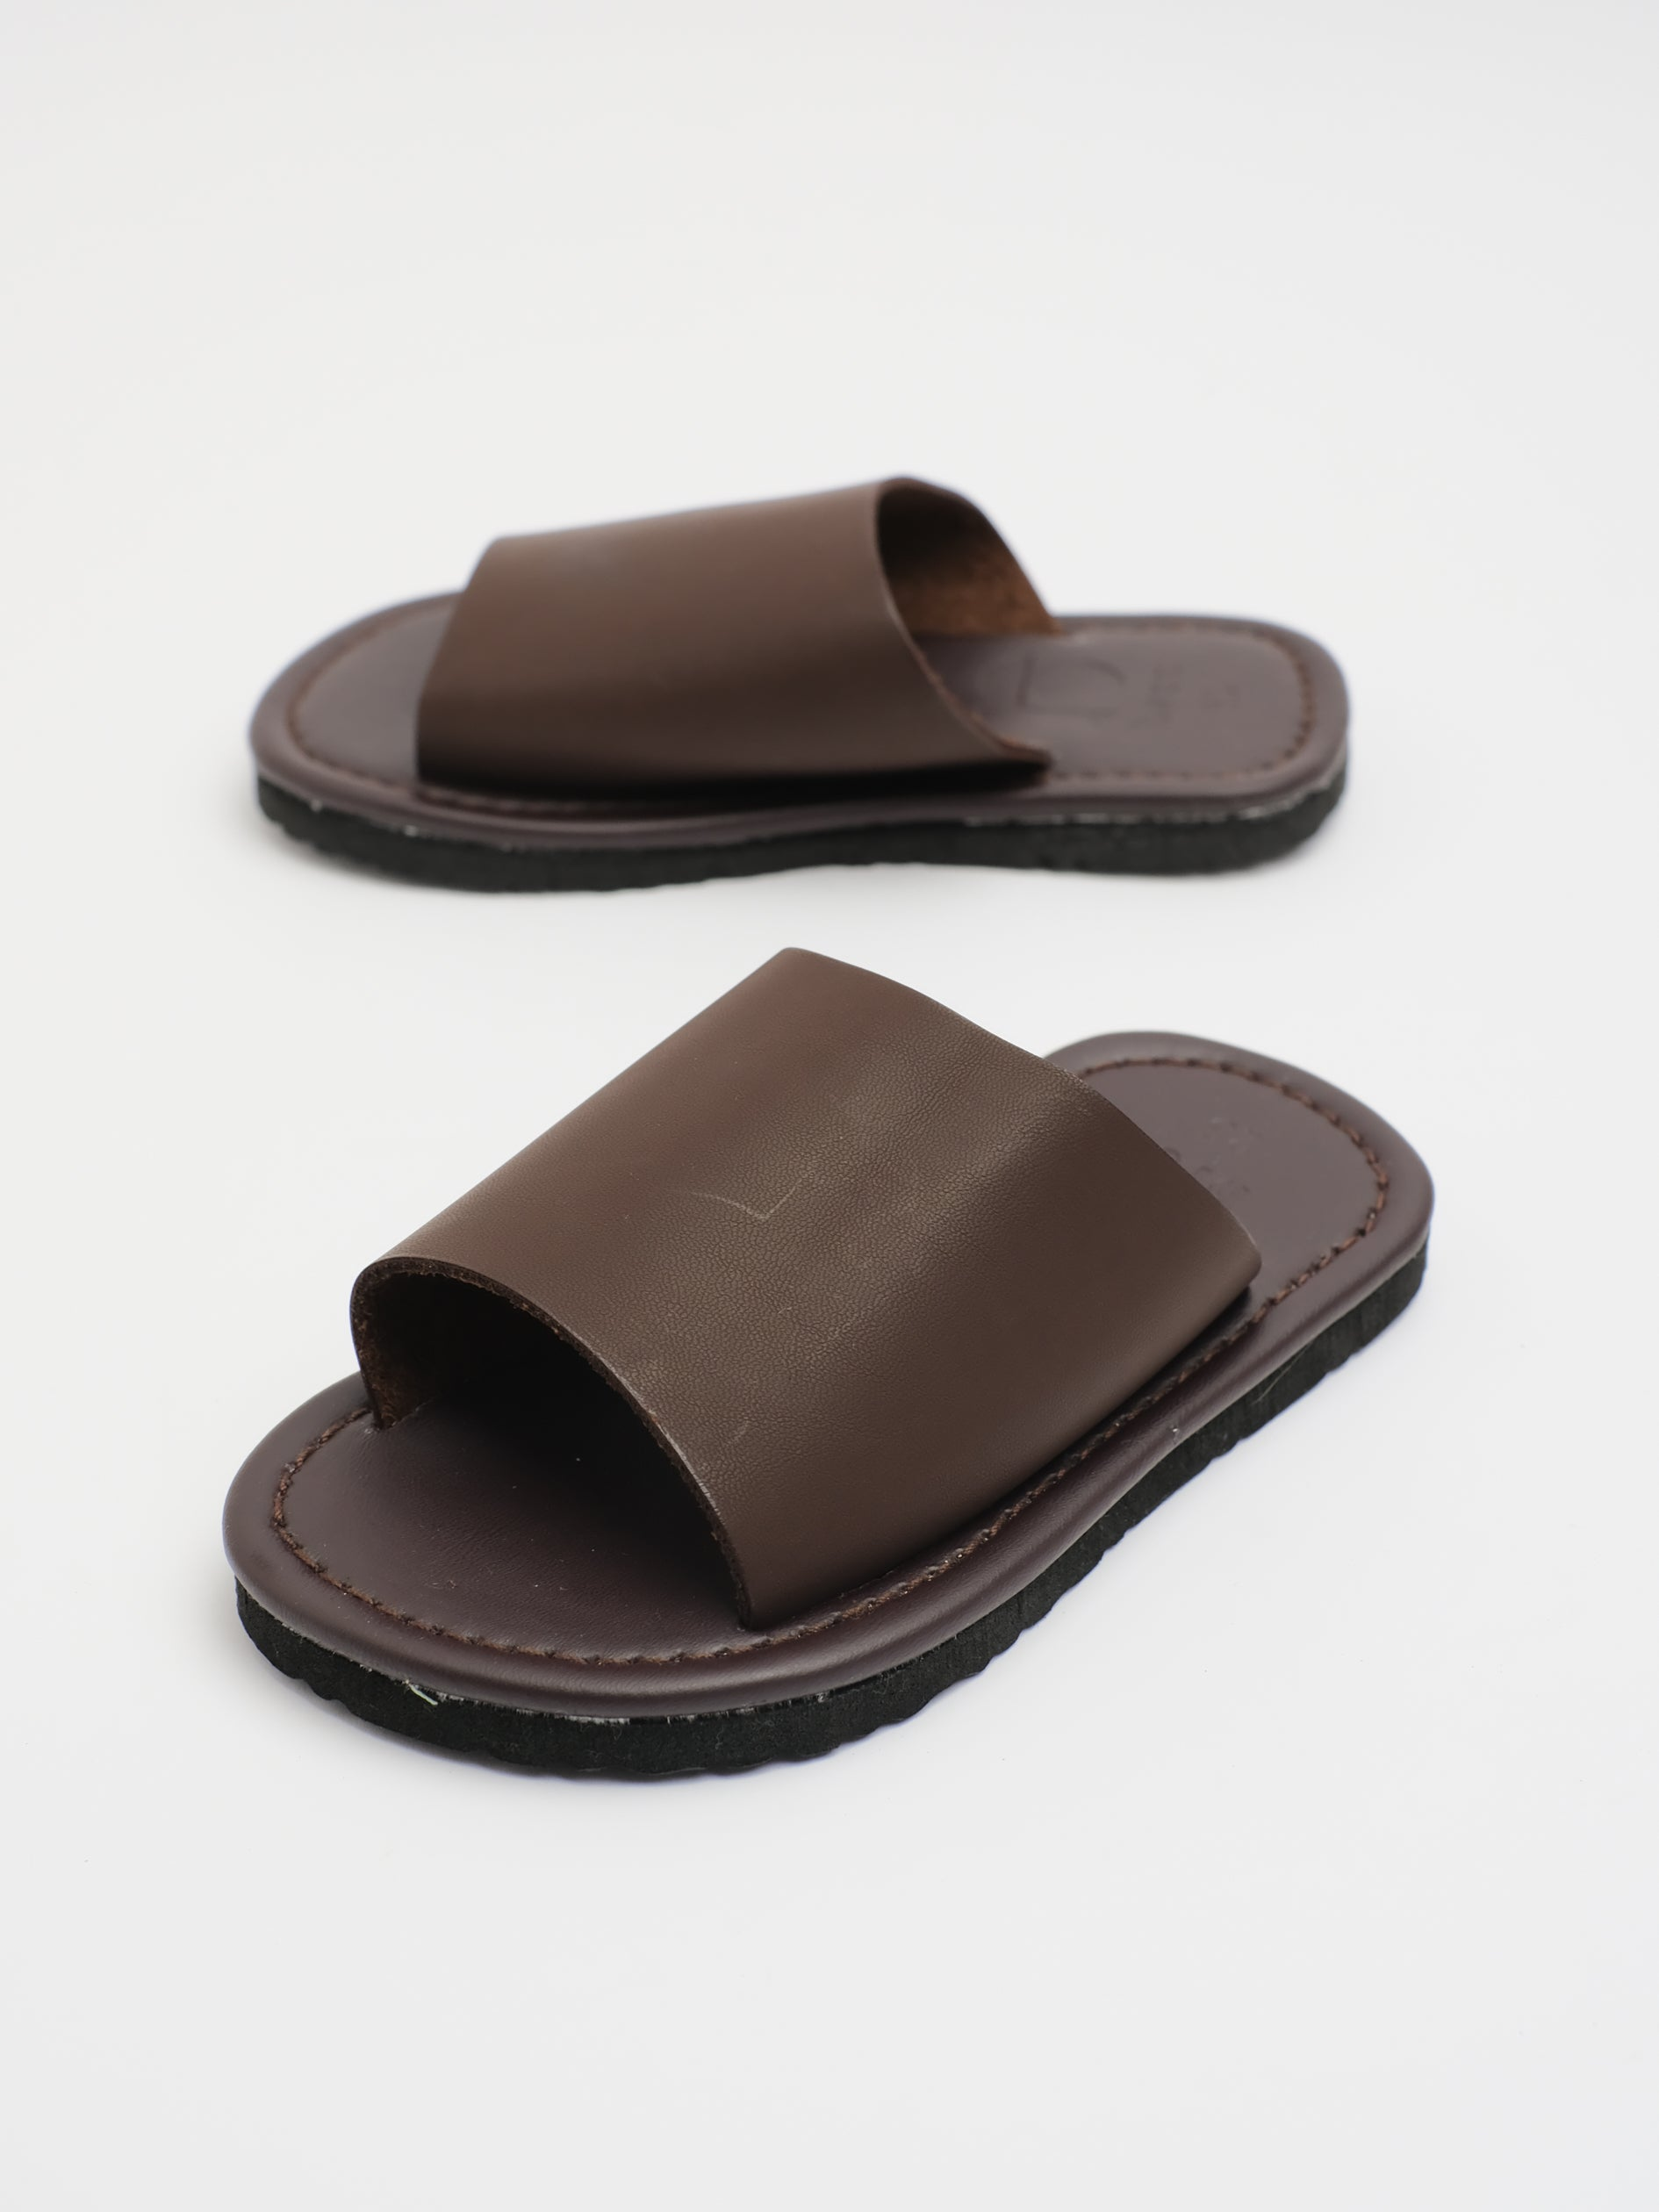 KIDS: JUD SLIDER (BROWN)